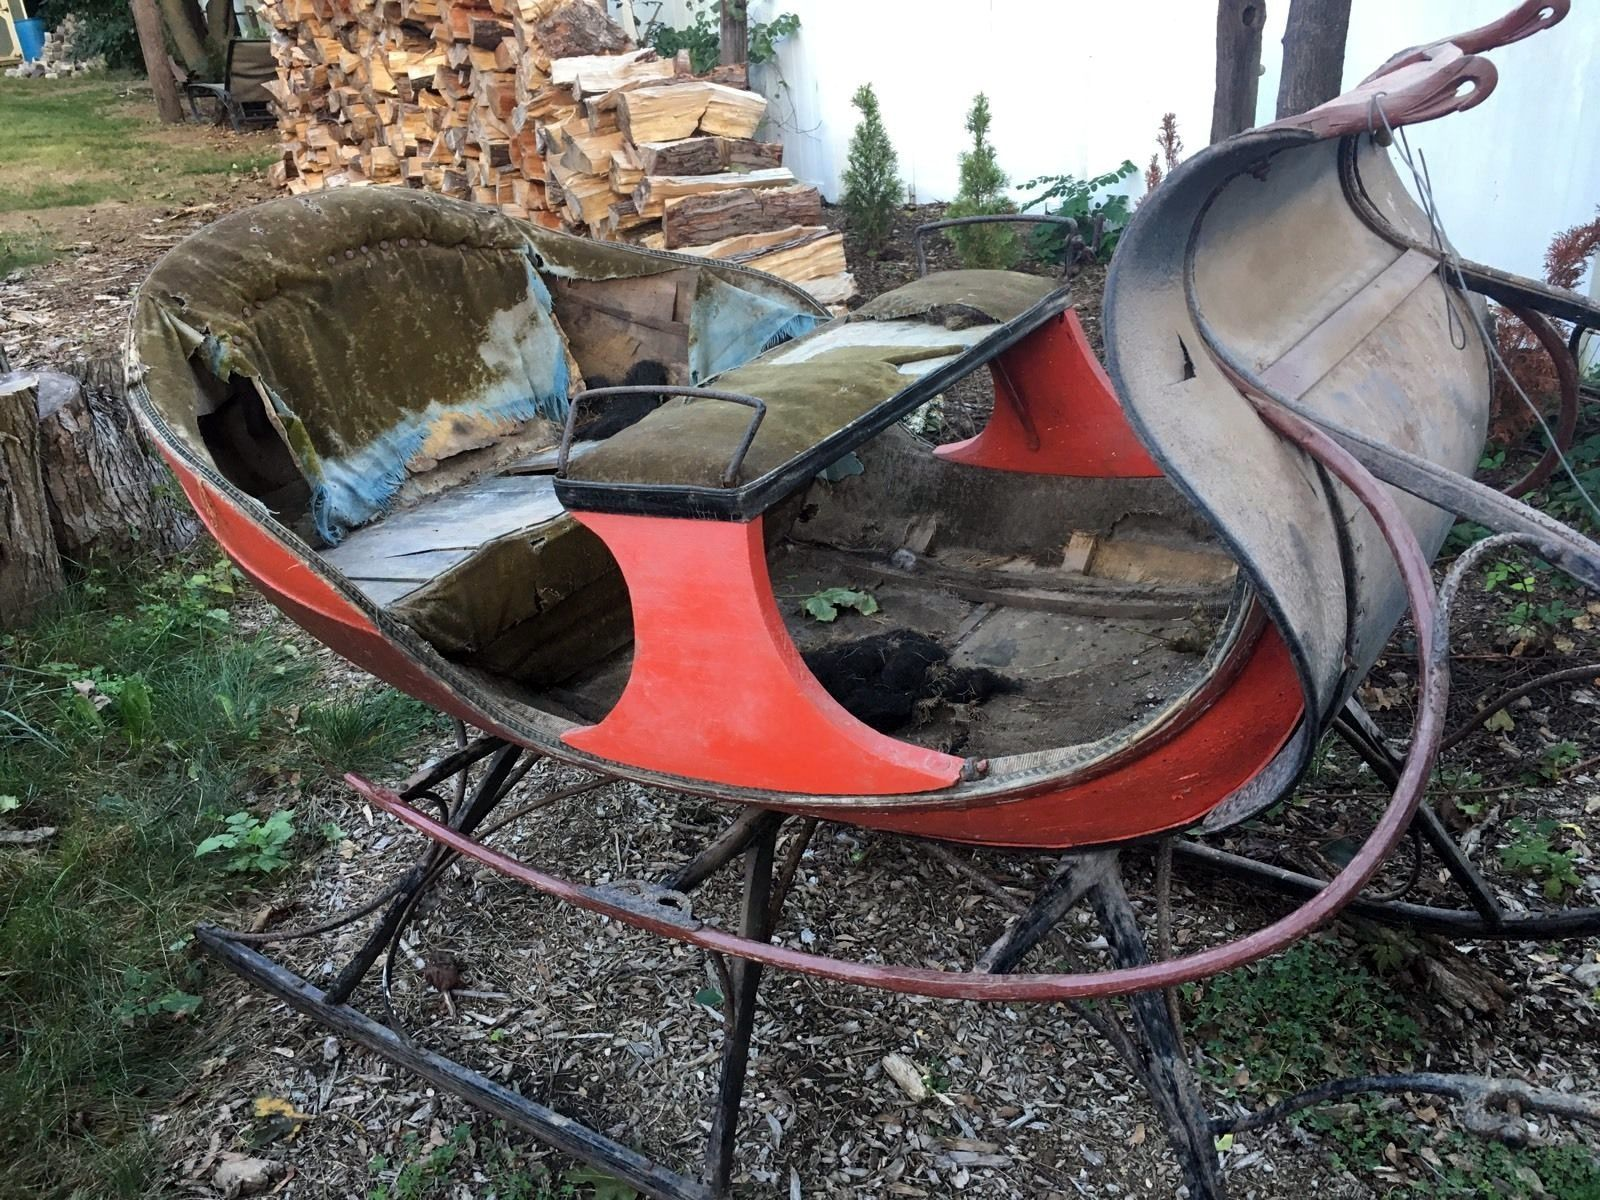 Santa's Sleigh: 1800's Albany Cutter - http://barnfinds.com/santas-sleigh-1800s-albany-cutter/